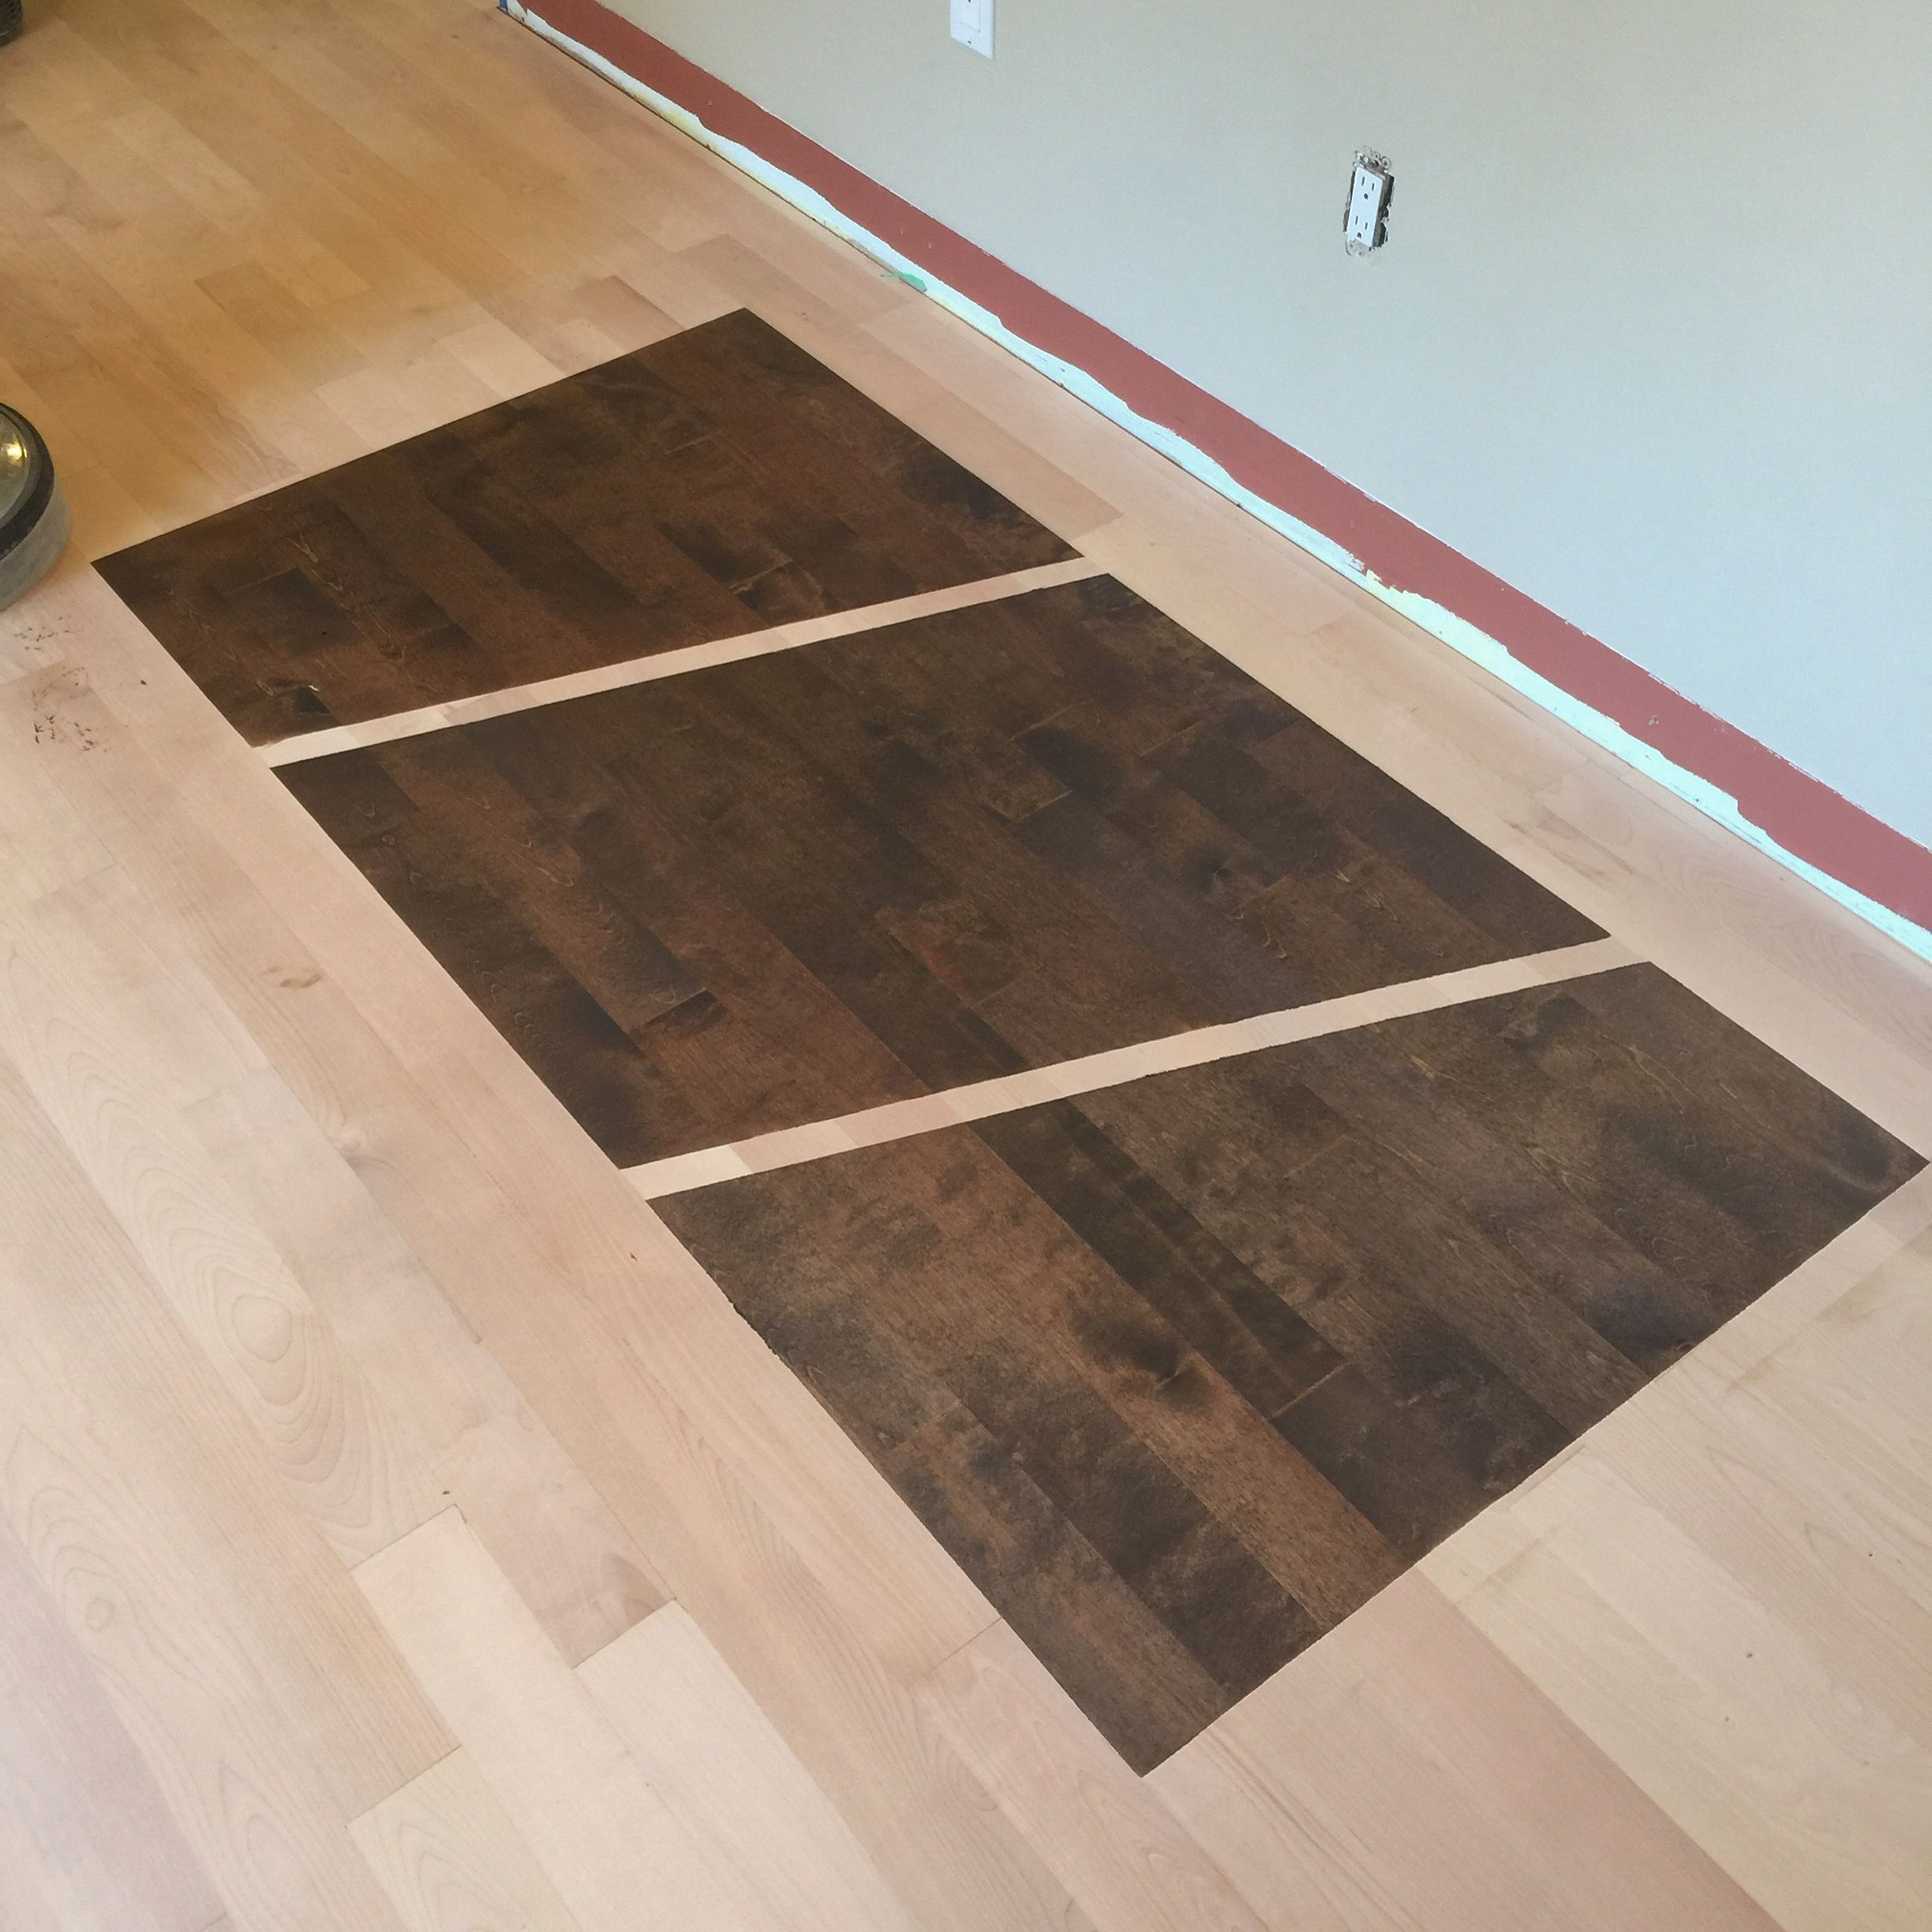 ideas classy hom enterwood flooring gray vinyl. Stain Samples On Birch Hardwood Floor The Best Way To Decide A New Colour For Your Is See It Floor. This Service We Offer So Ideas Classy Hom Enterwood Flooring Gray Vinyl 2